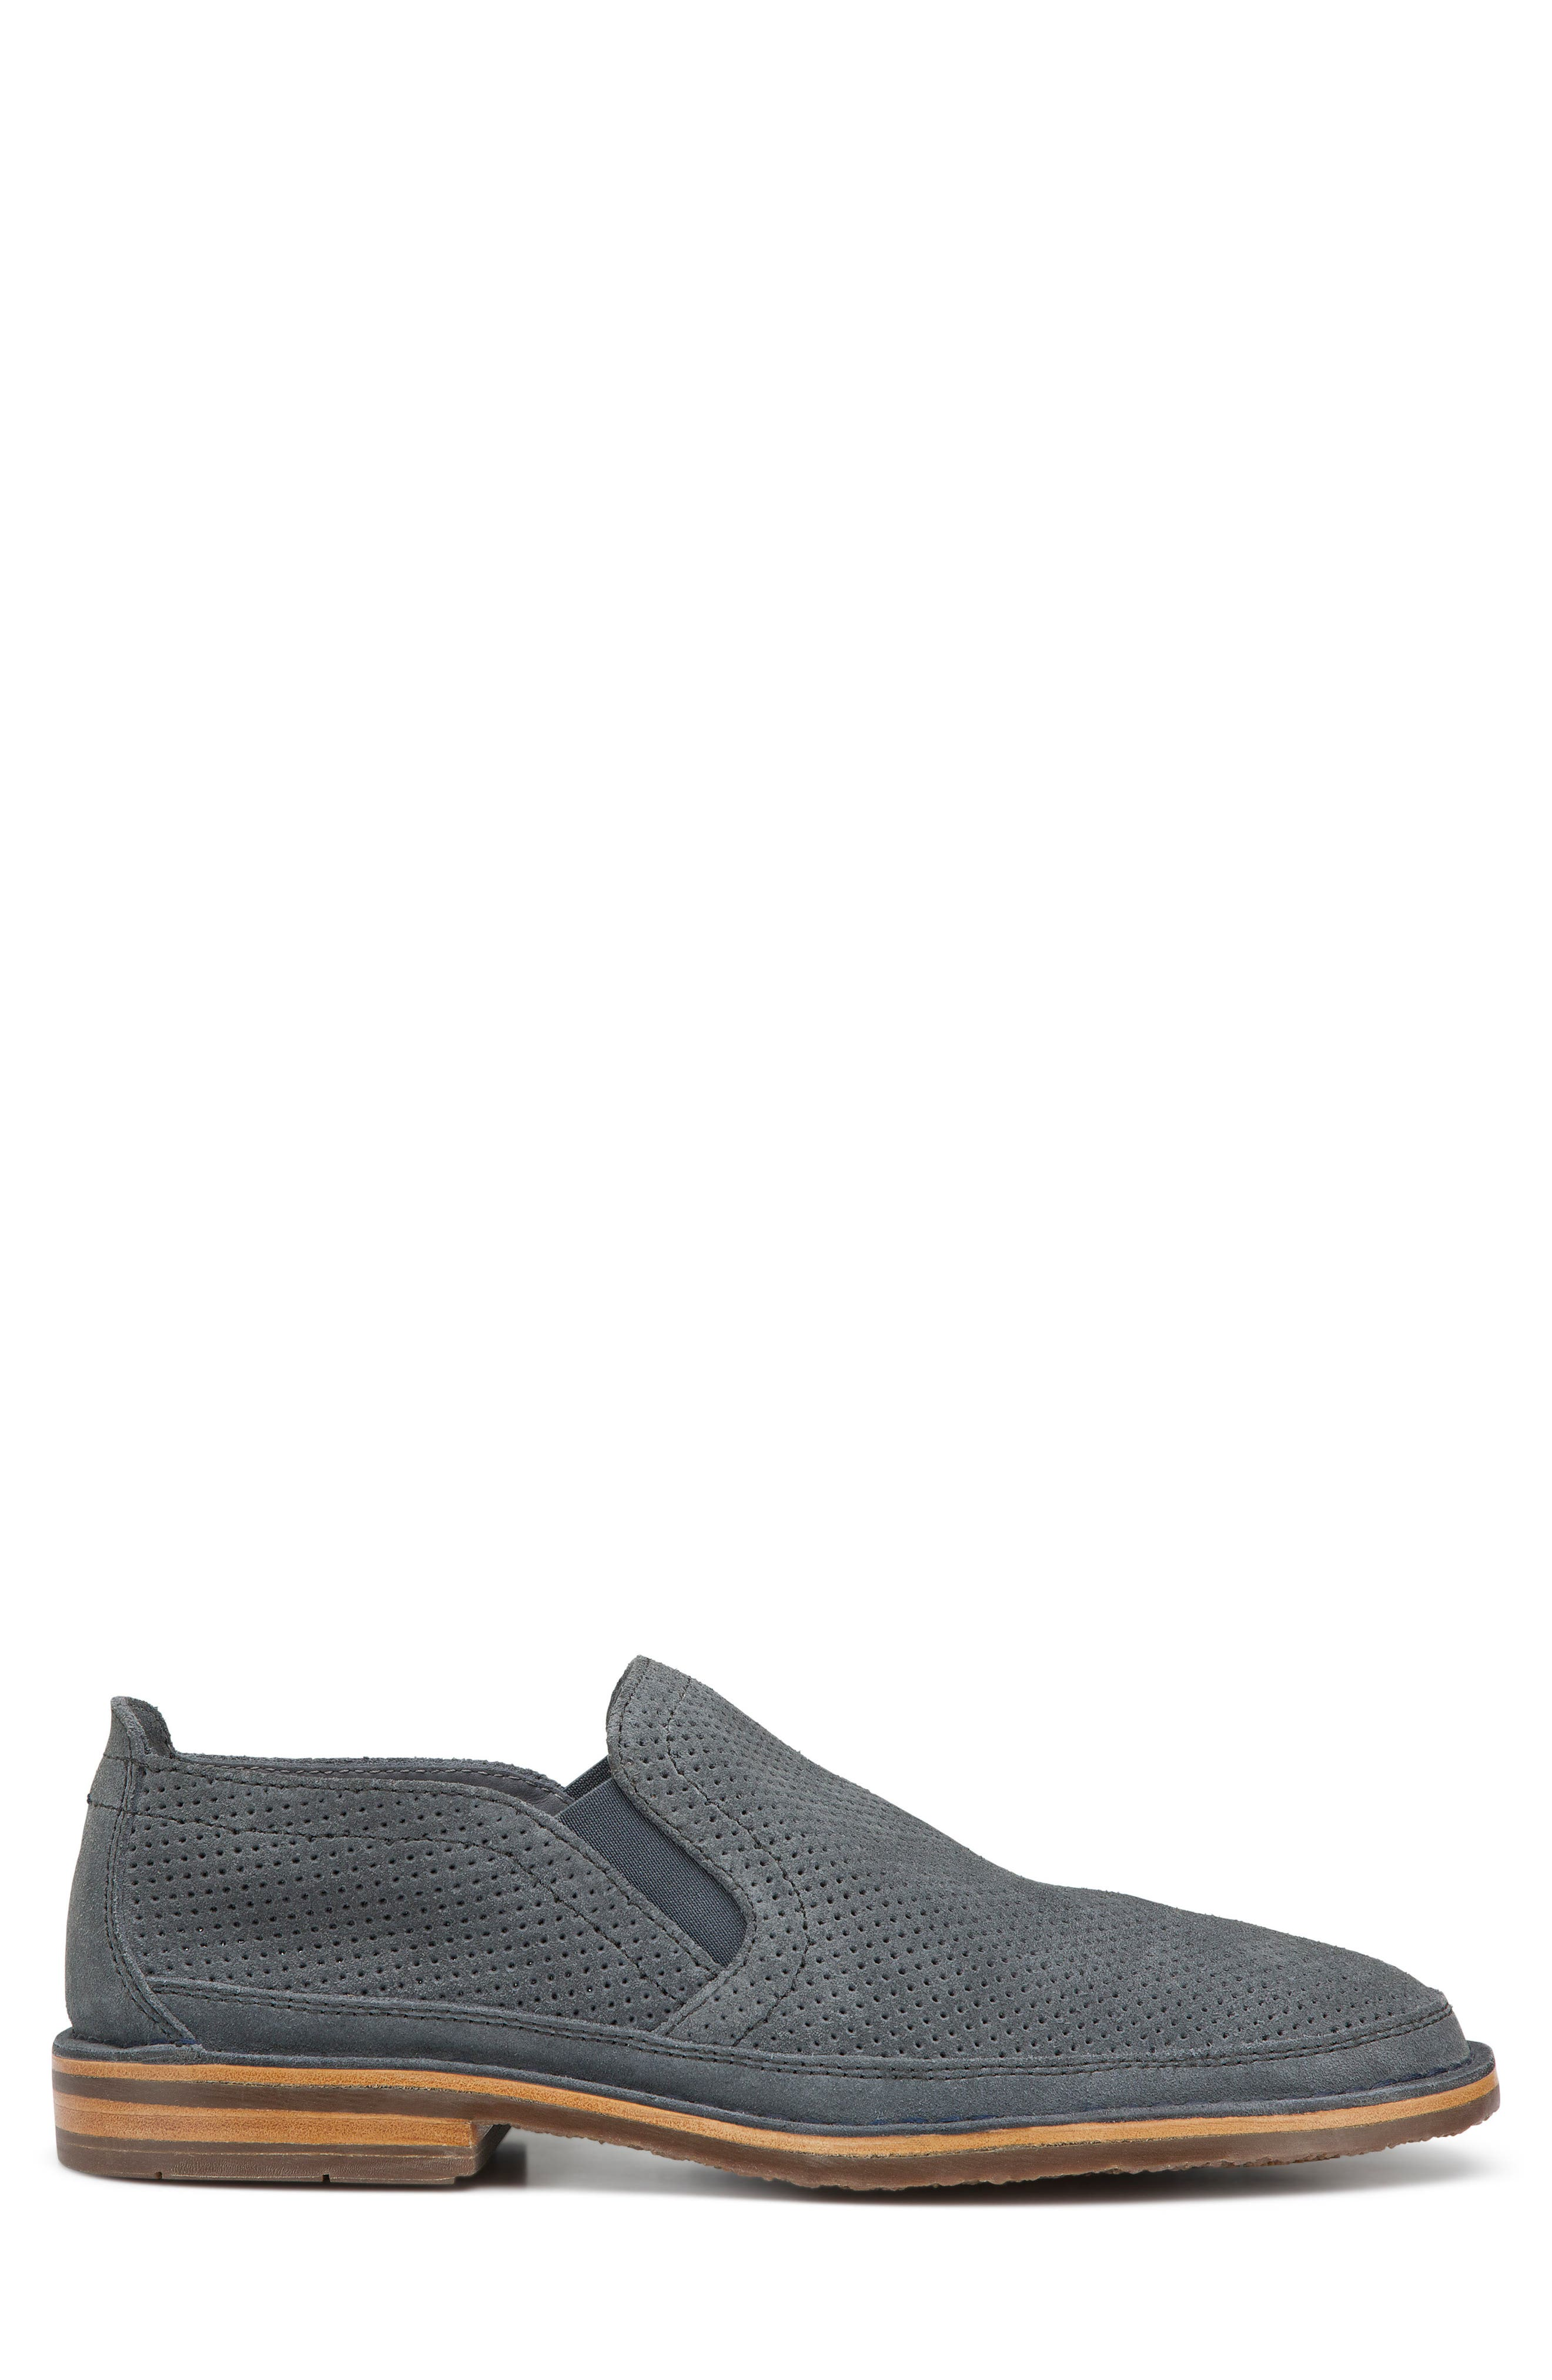 TRASK,                             Bradley Perforated Slip-On,                             Alternate thumbnail 2, color,                             SLATE GREY SUEDE